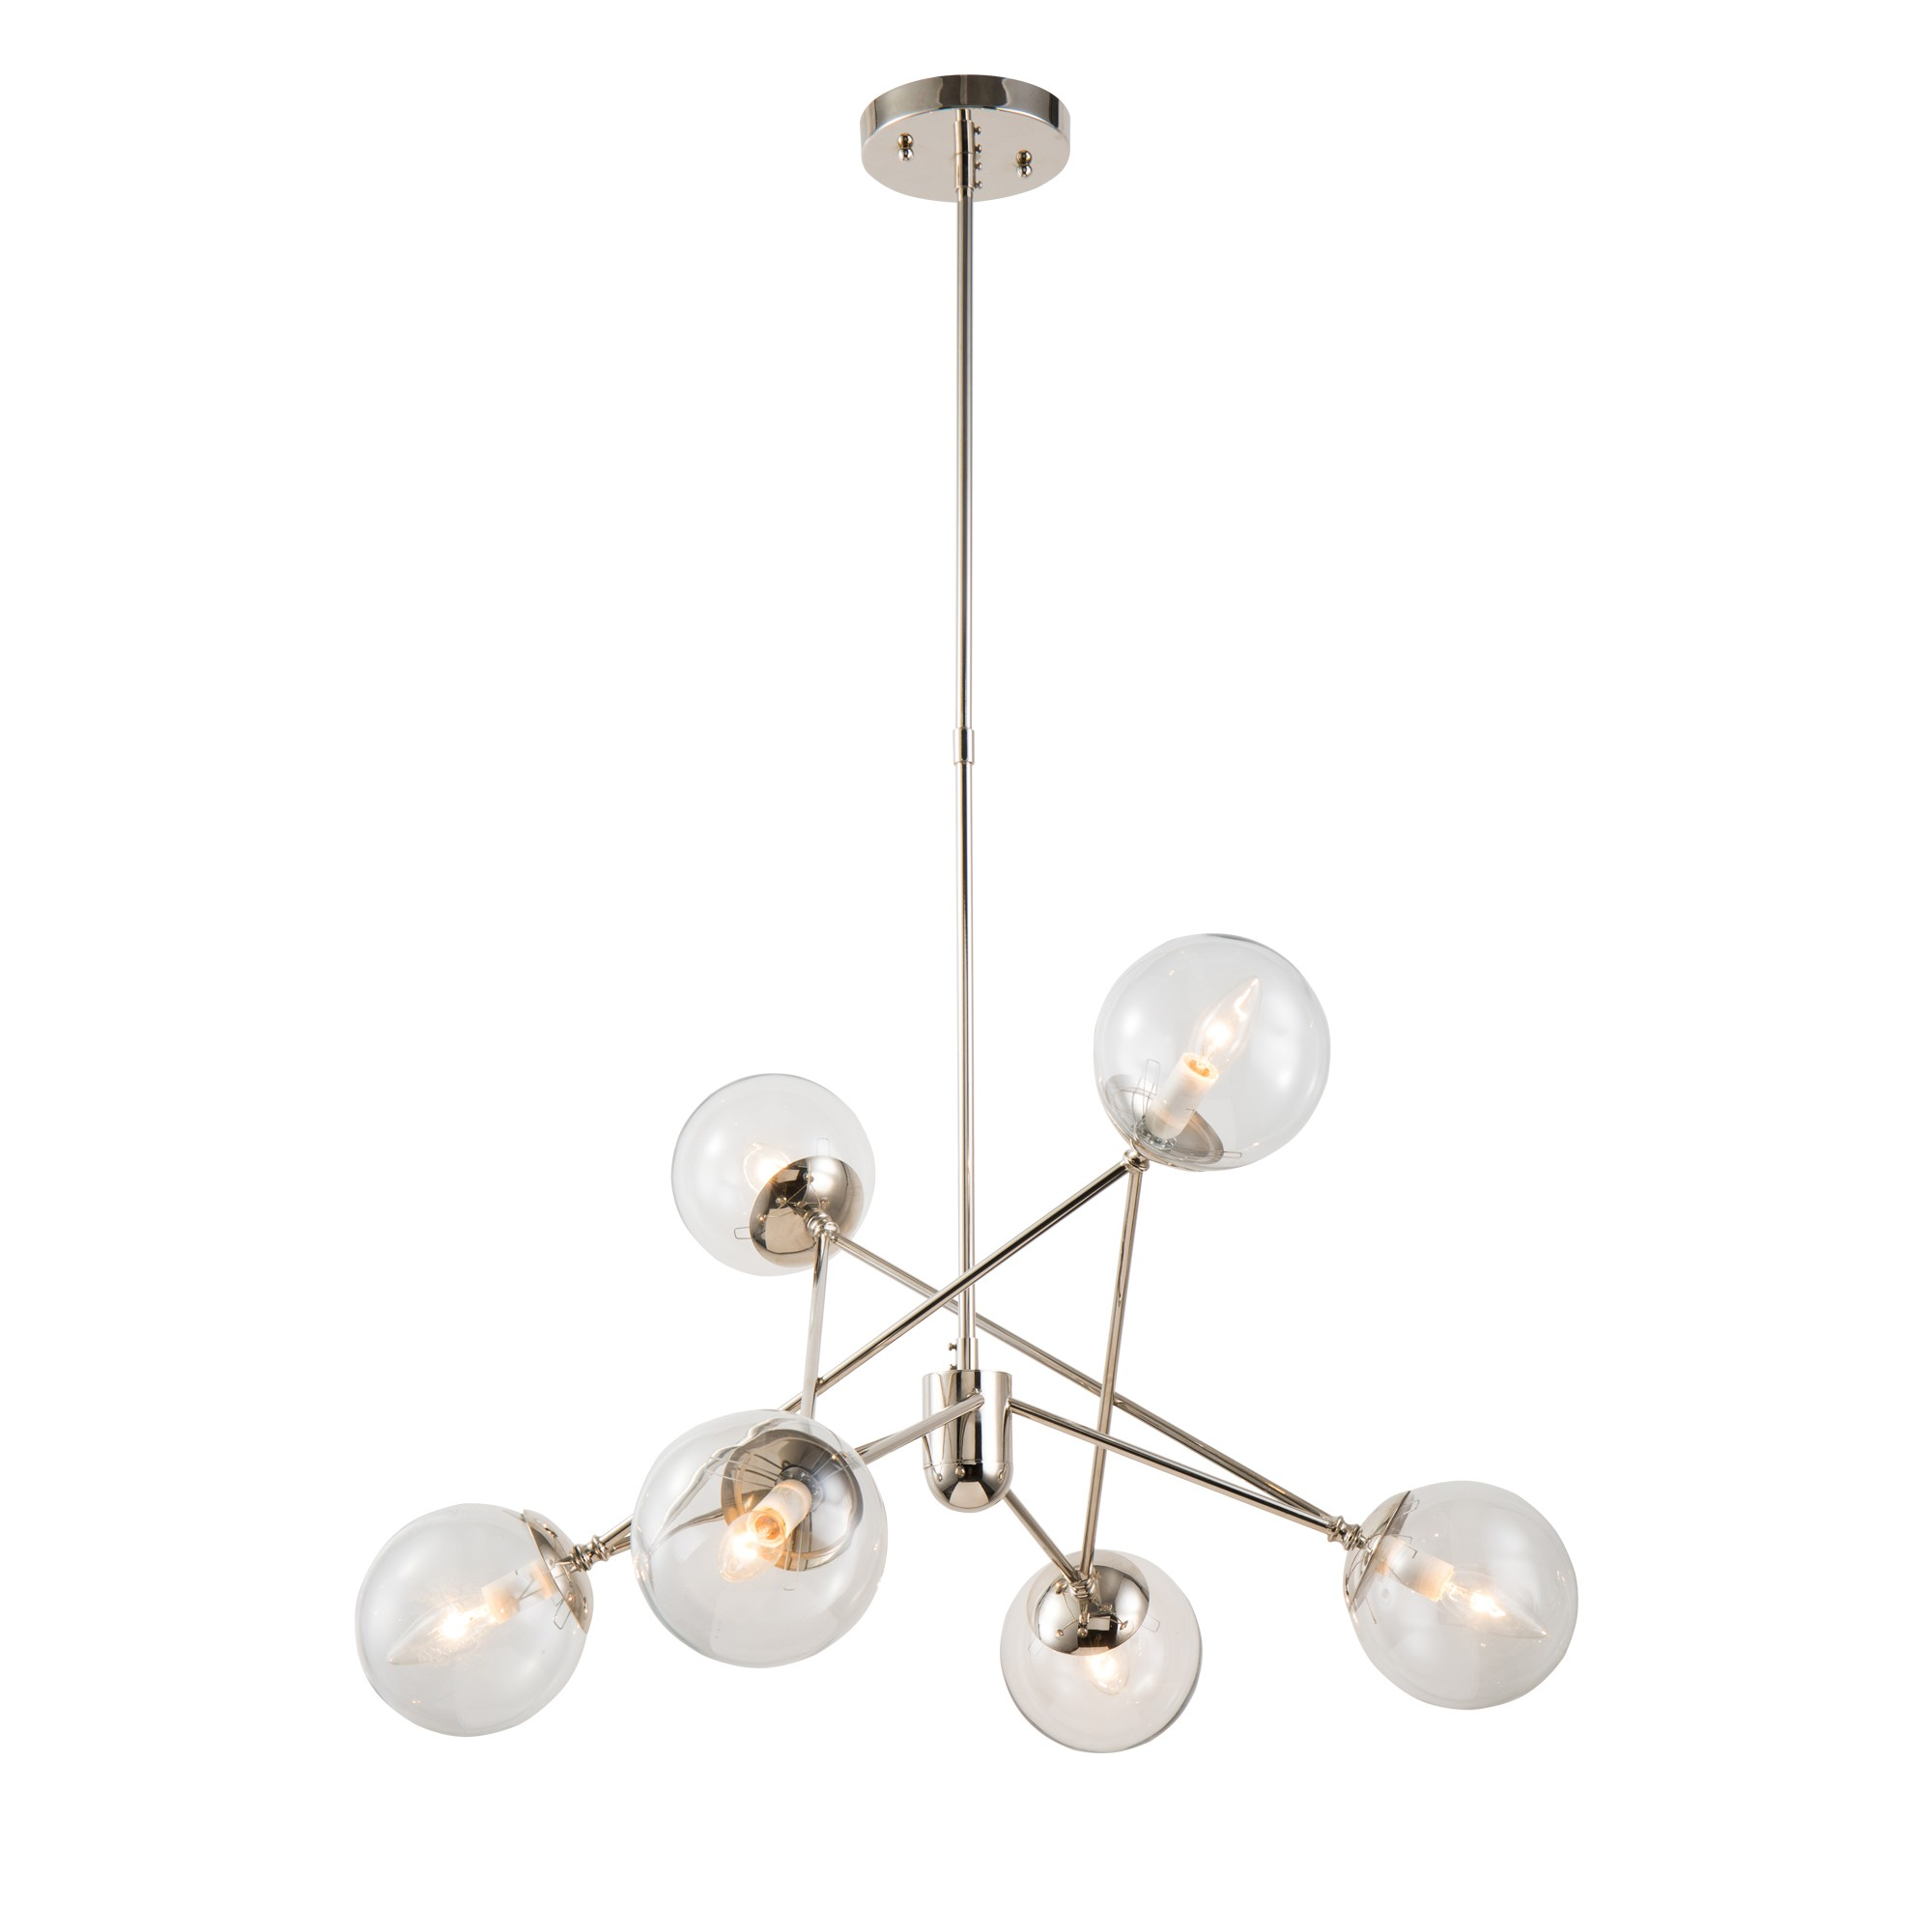 Farhan Iron & Glass Pendant Light